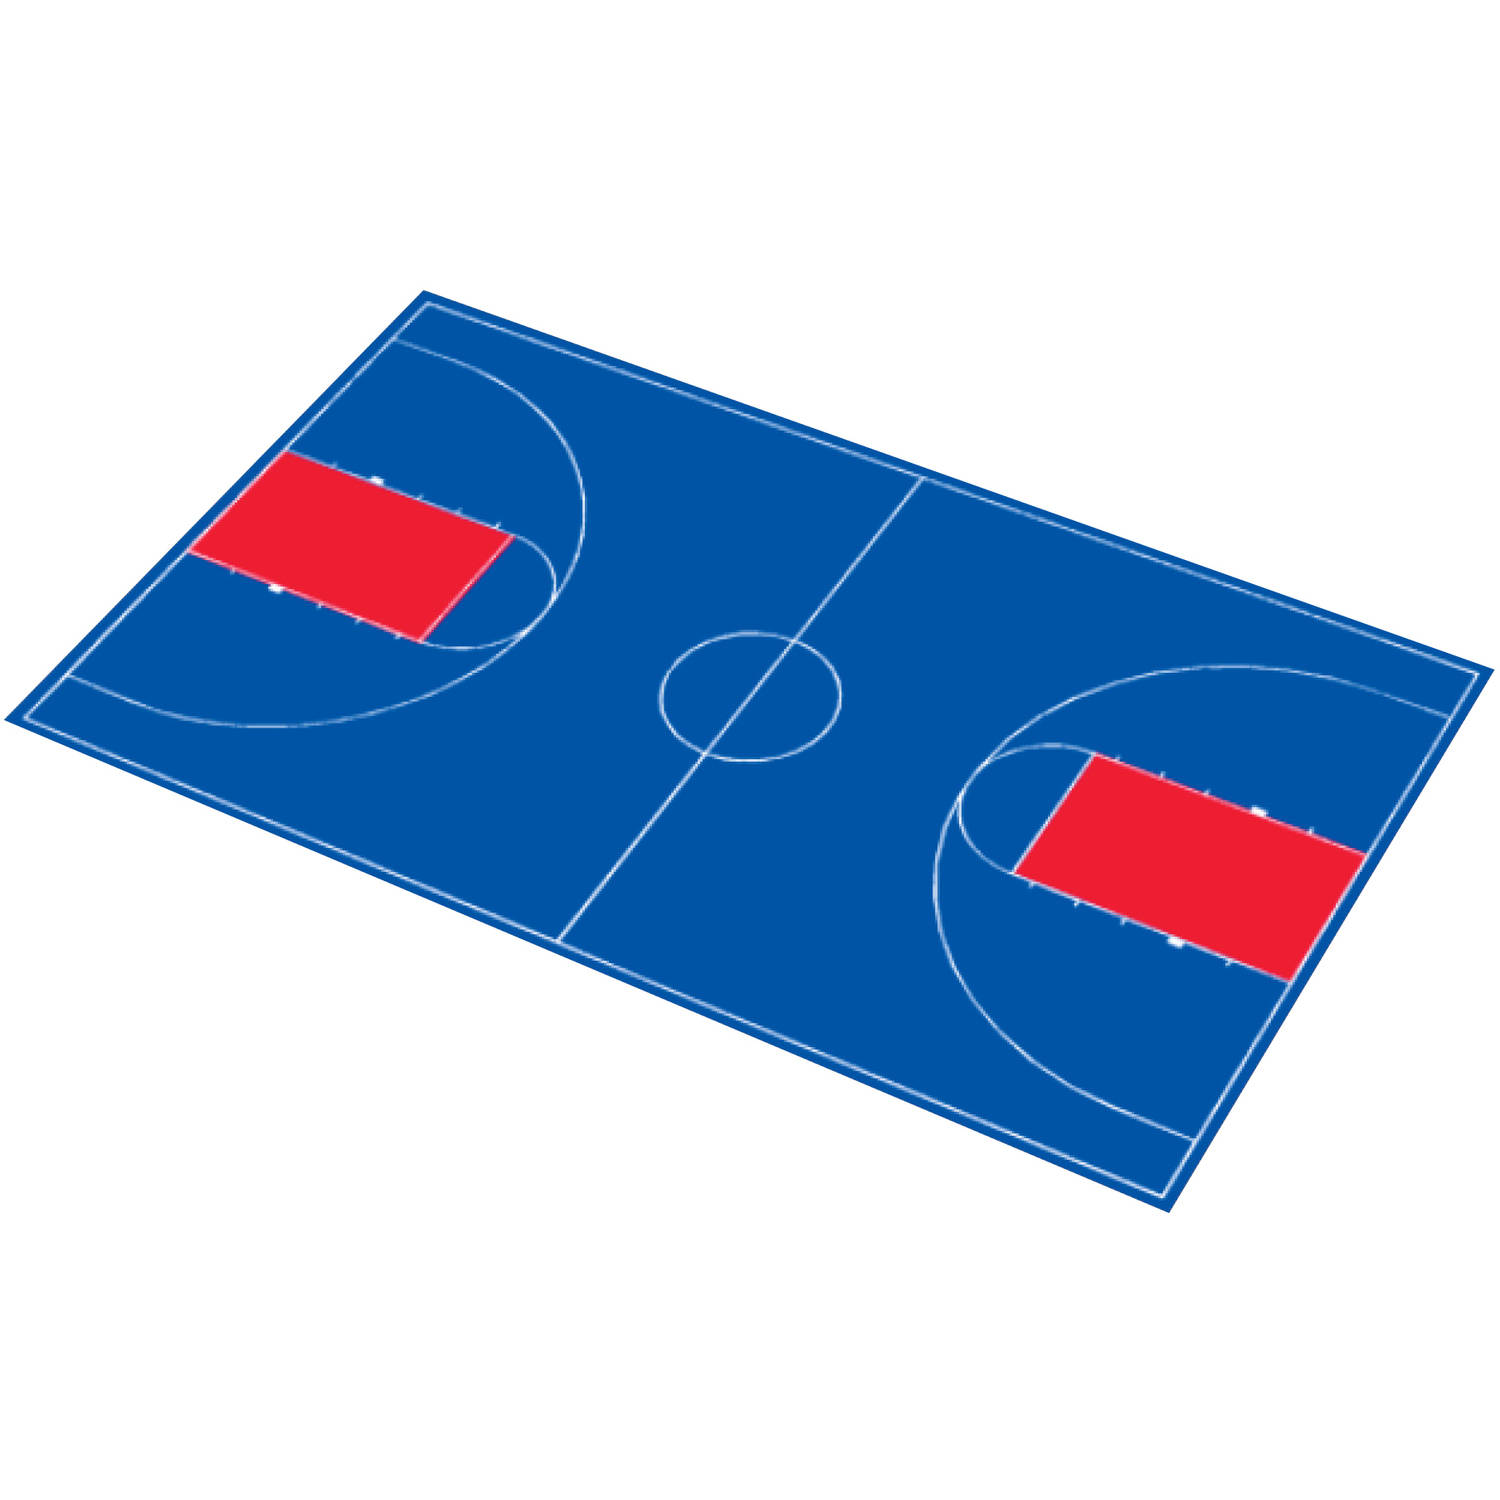 """DuraPlay Full Court Basketball Kit, 51' x 83'11"""", Royal Blue and Red"""